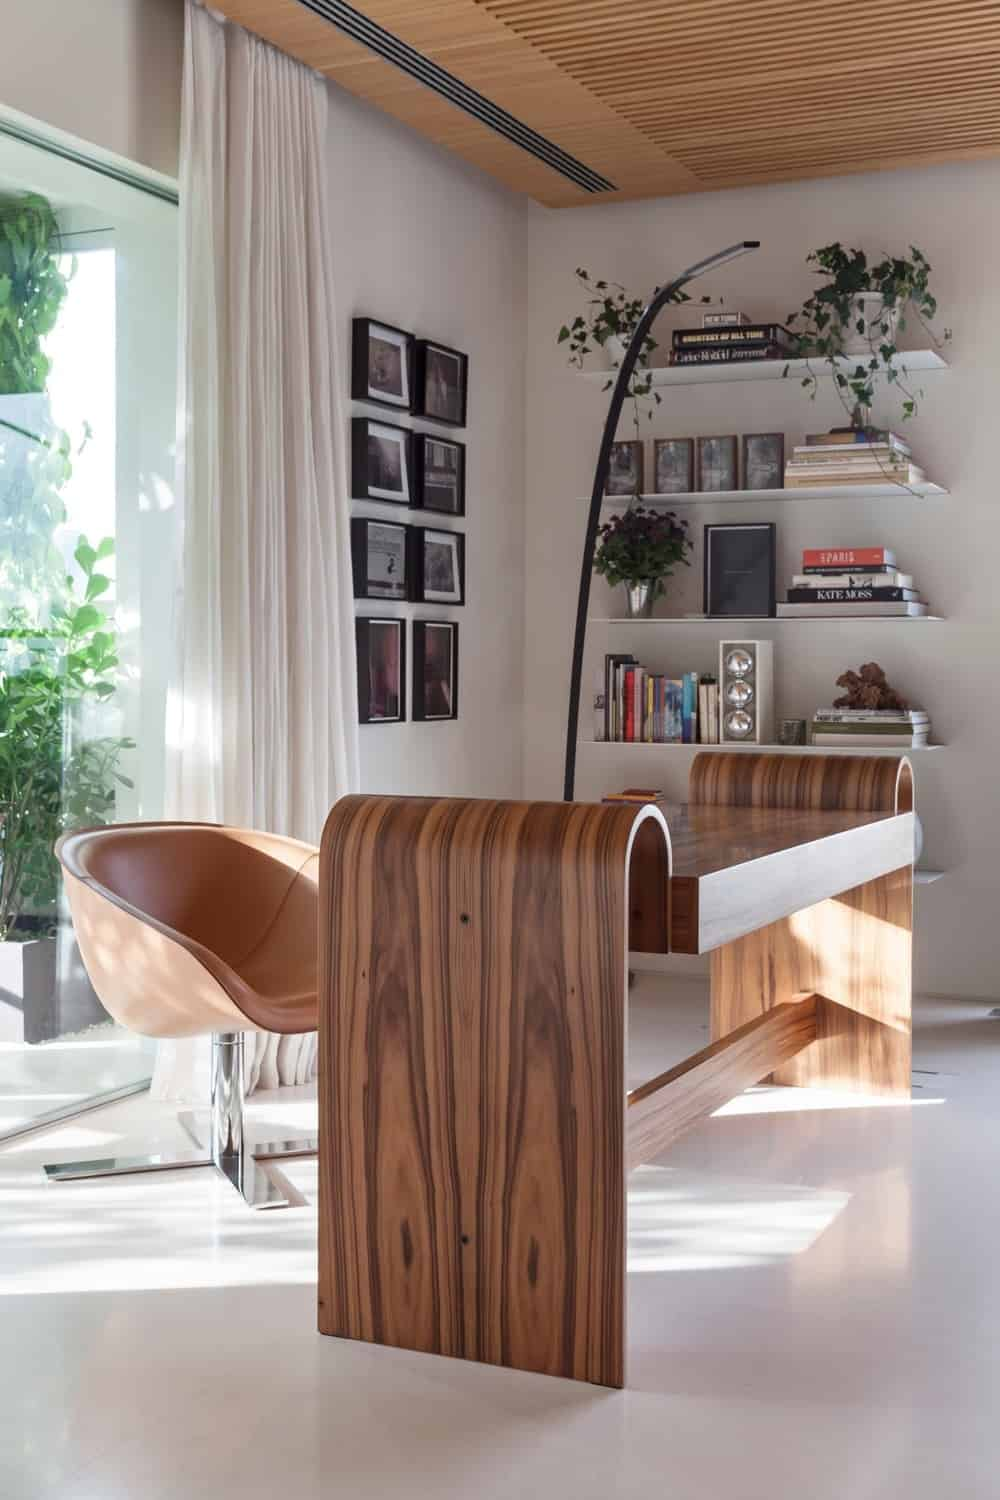 Home office with white walls and flooring together with hardwood ceiling and table. Photo Credit: RuiTeixeira